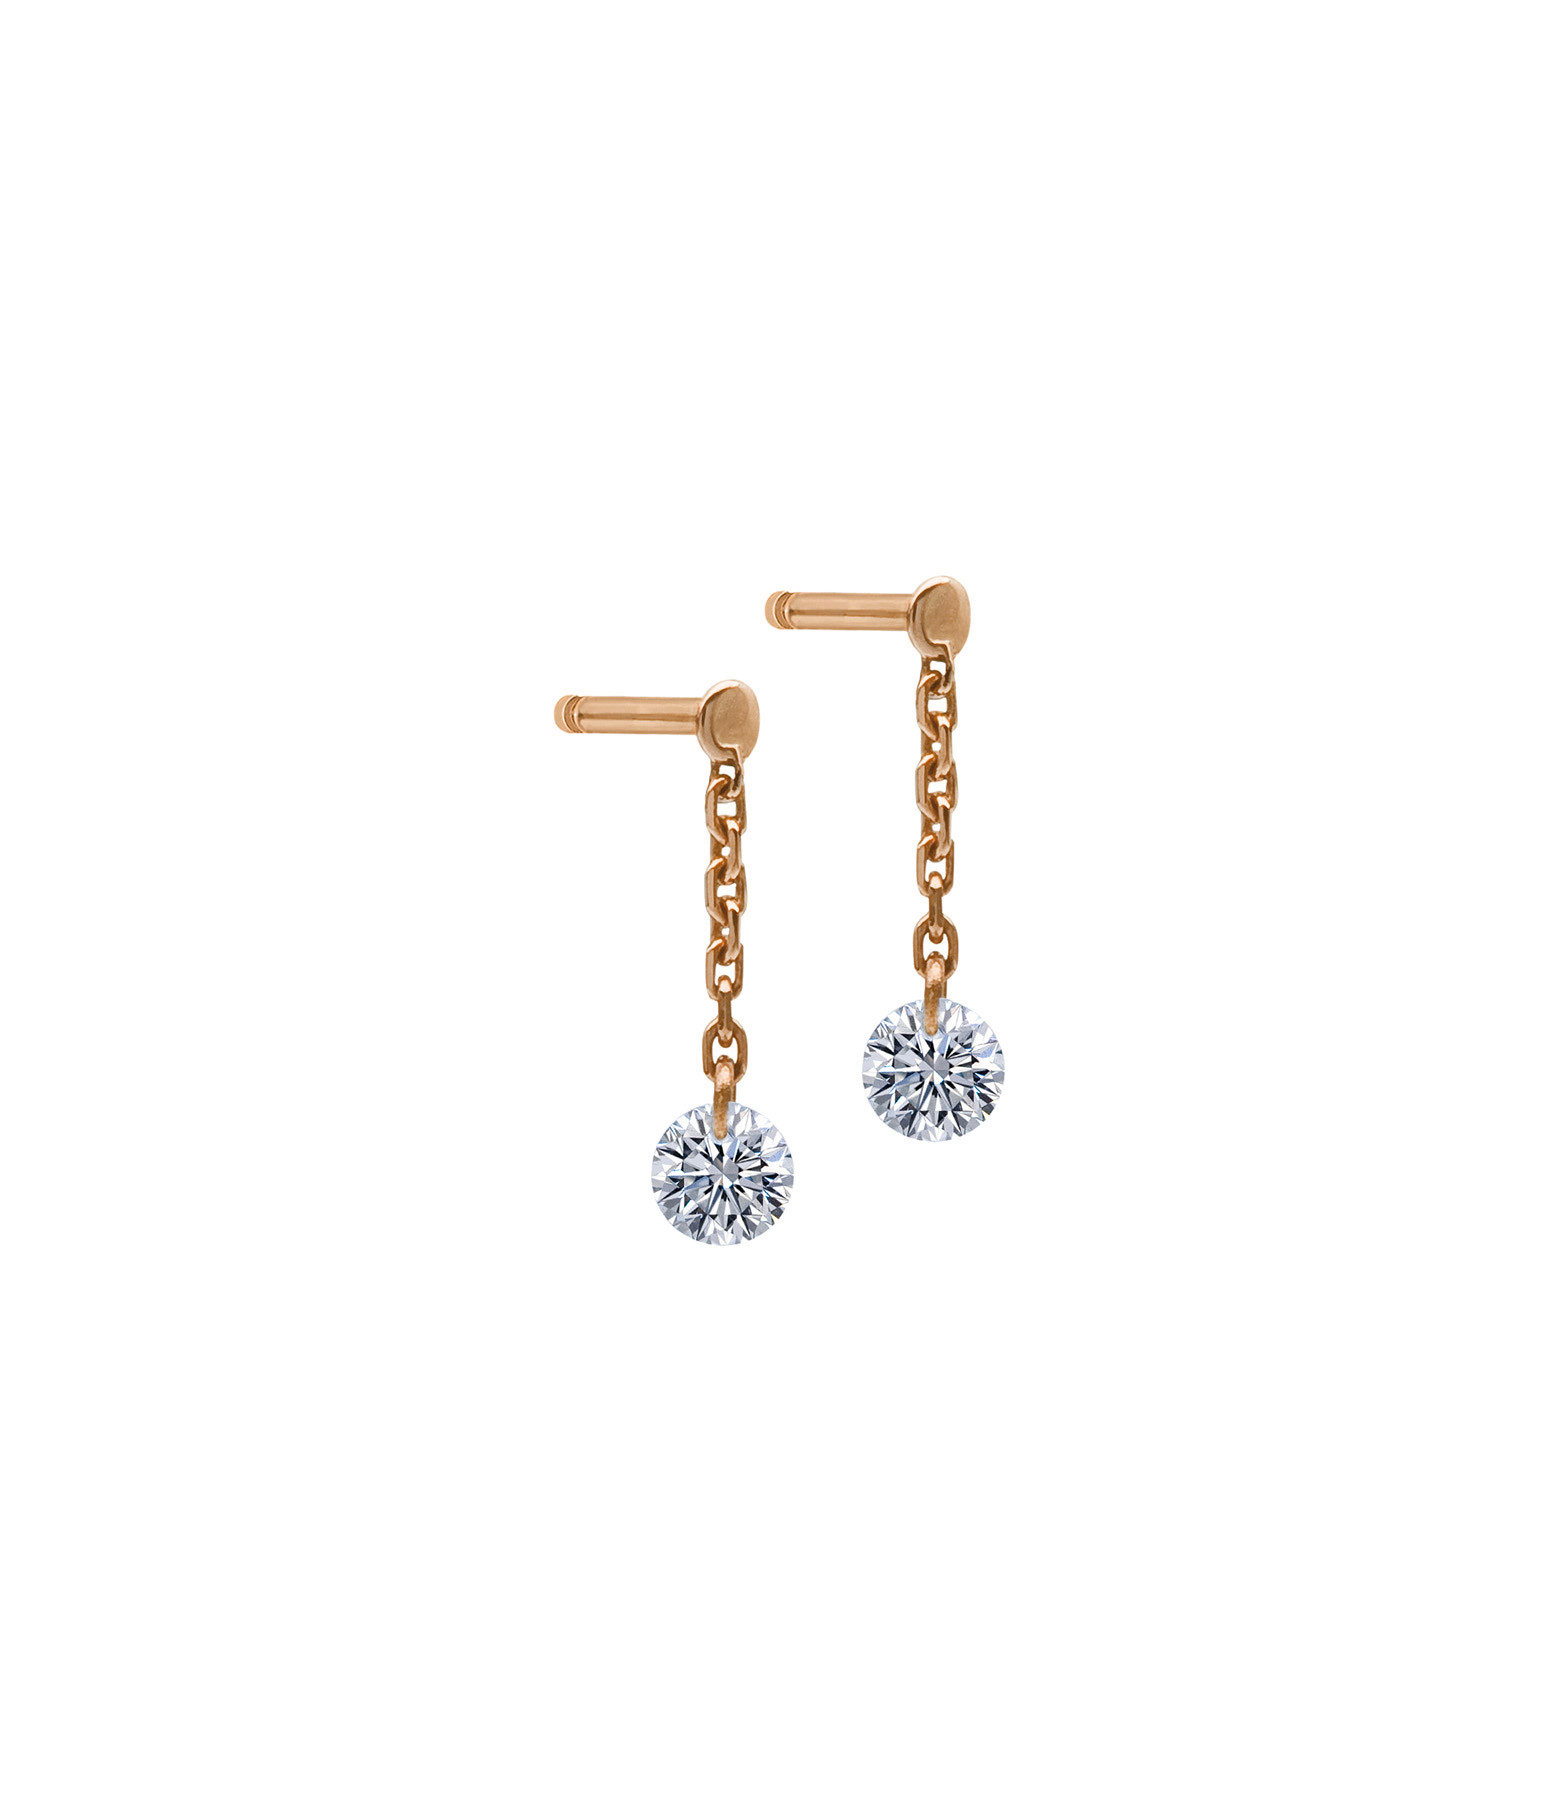 LA BRUNE & LA BLONDE - Boucles d'oreilles 360° Diamant Brillant Or Rose